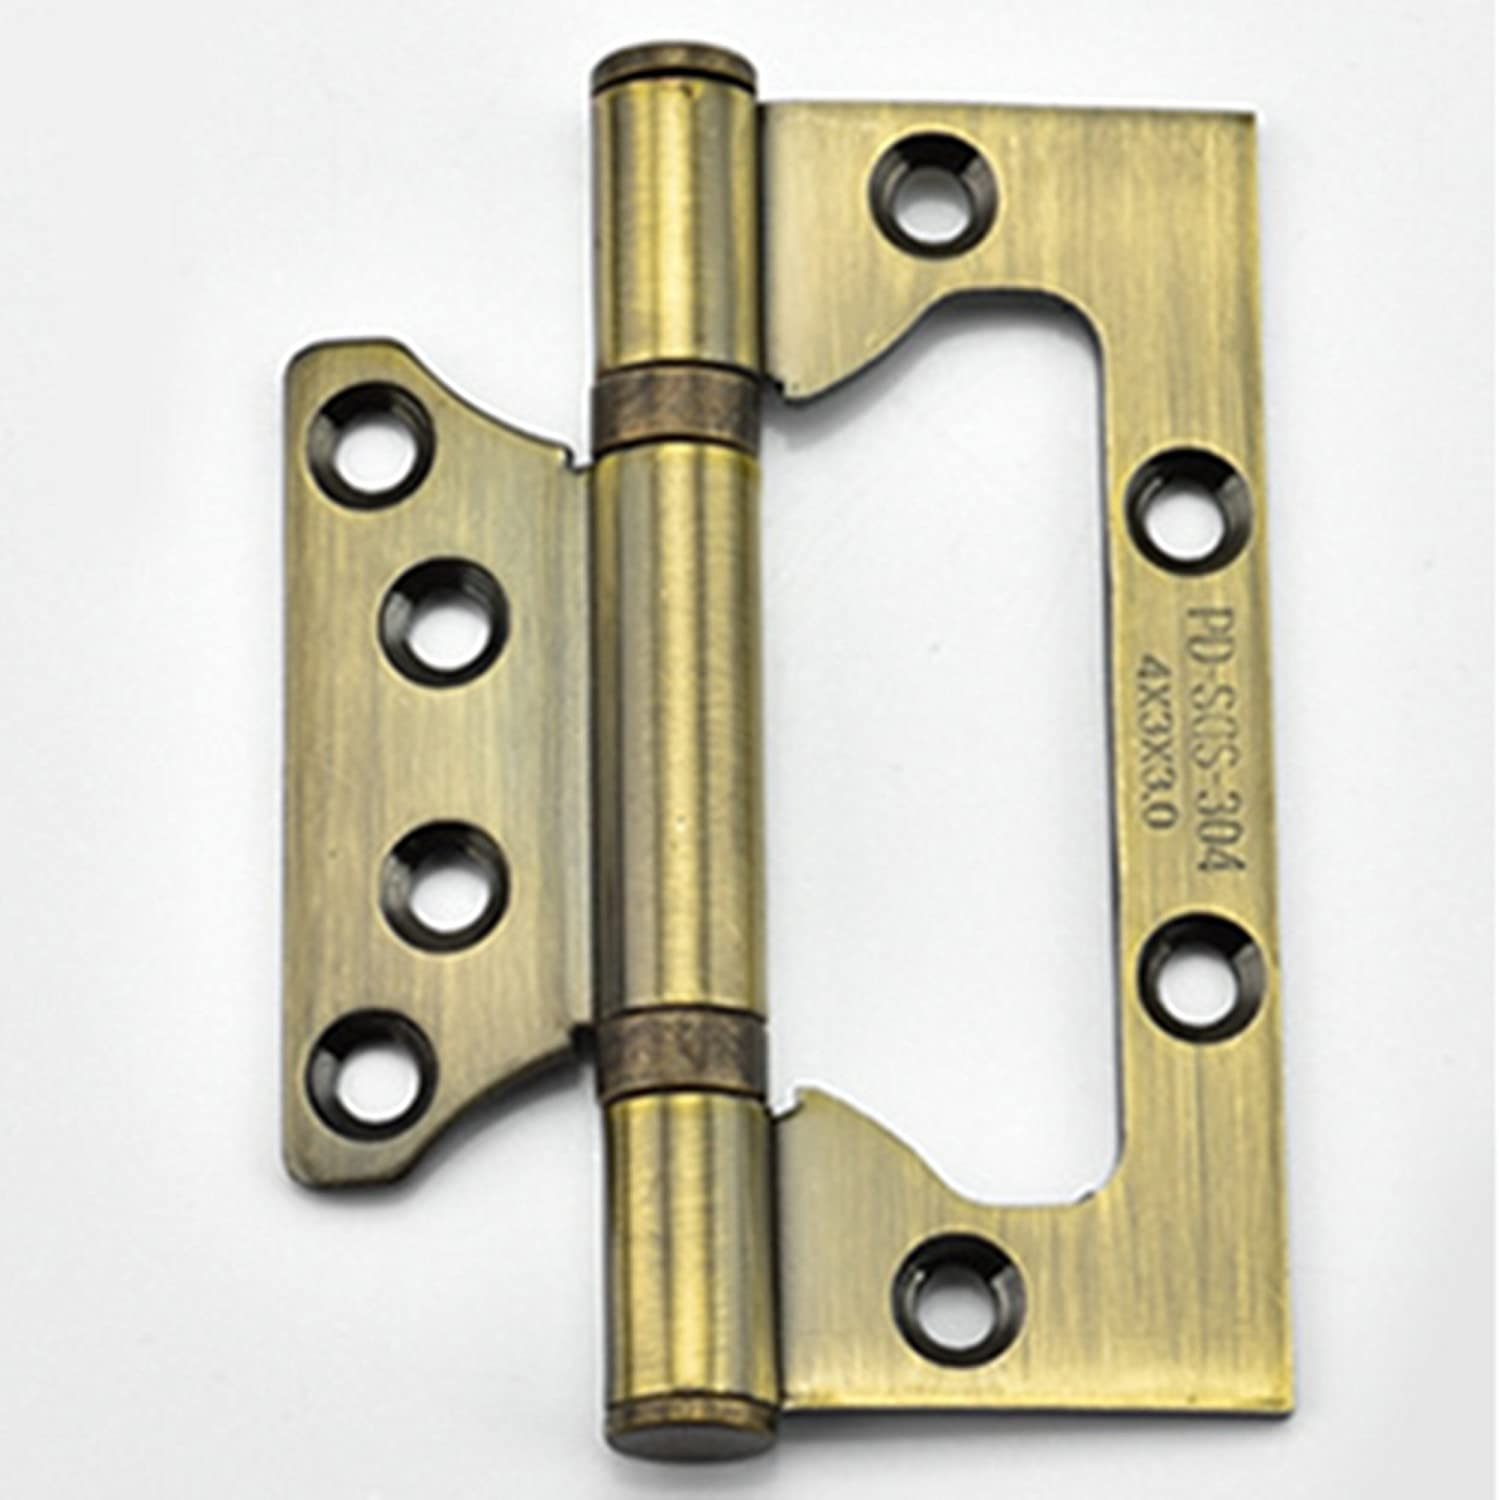 Non-Mortise Bi-Fold Mute Door Hinges Stainless Steel,A pair 100 x 50 x2.3 mm RZDEAL SU304G 5.25 inch